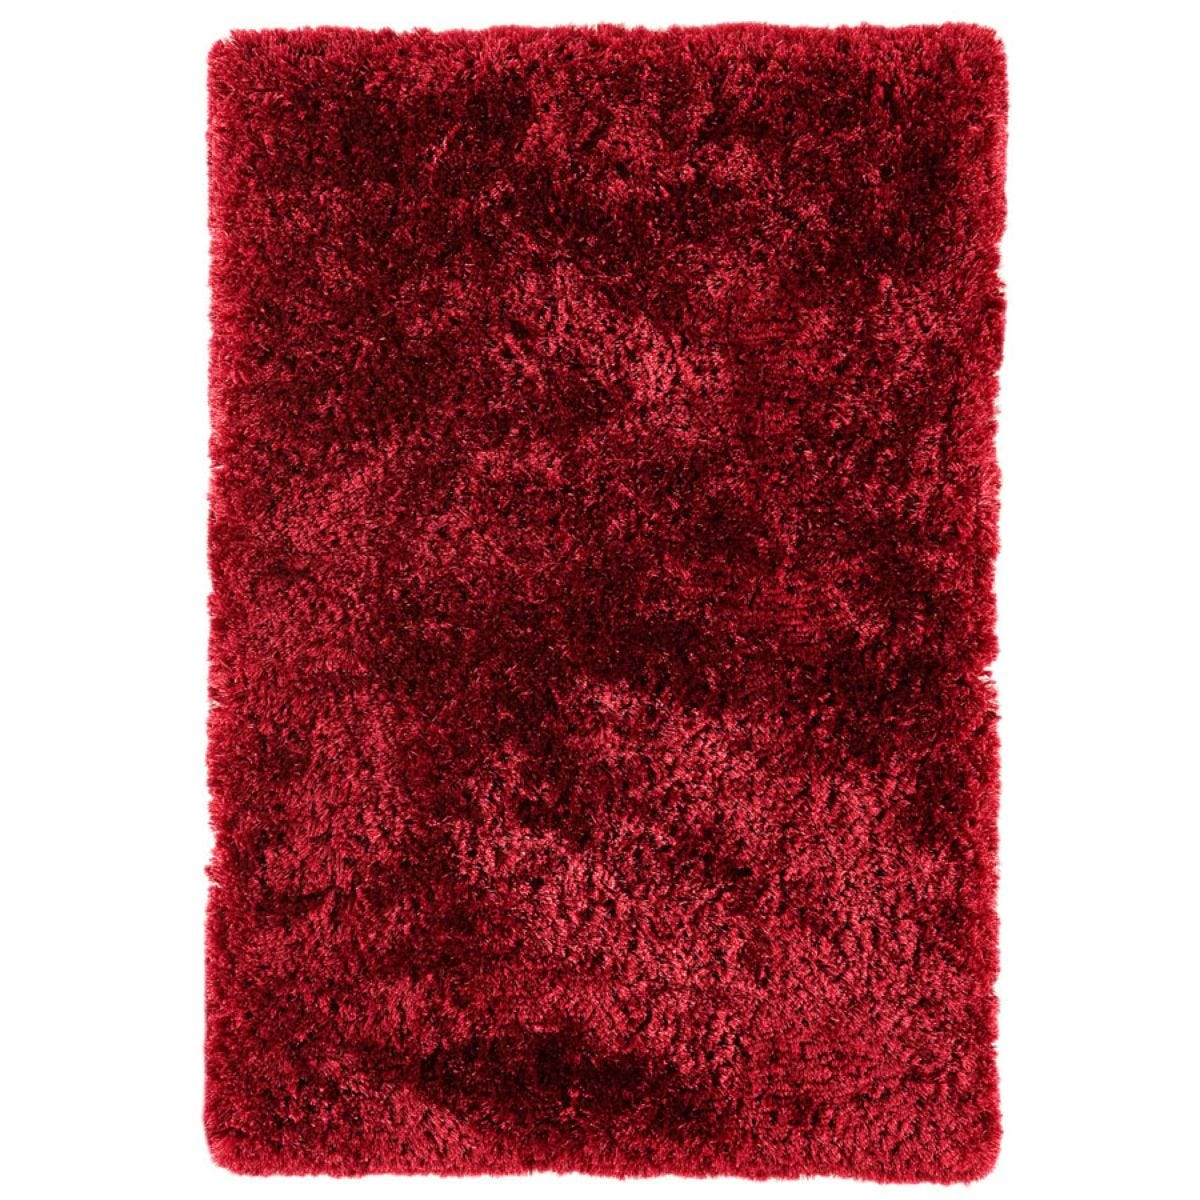 Asiatic Large Shaggy Rug, 160x230cm